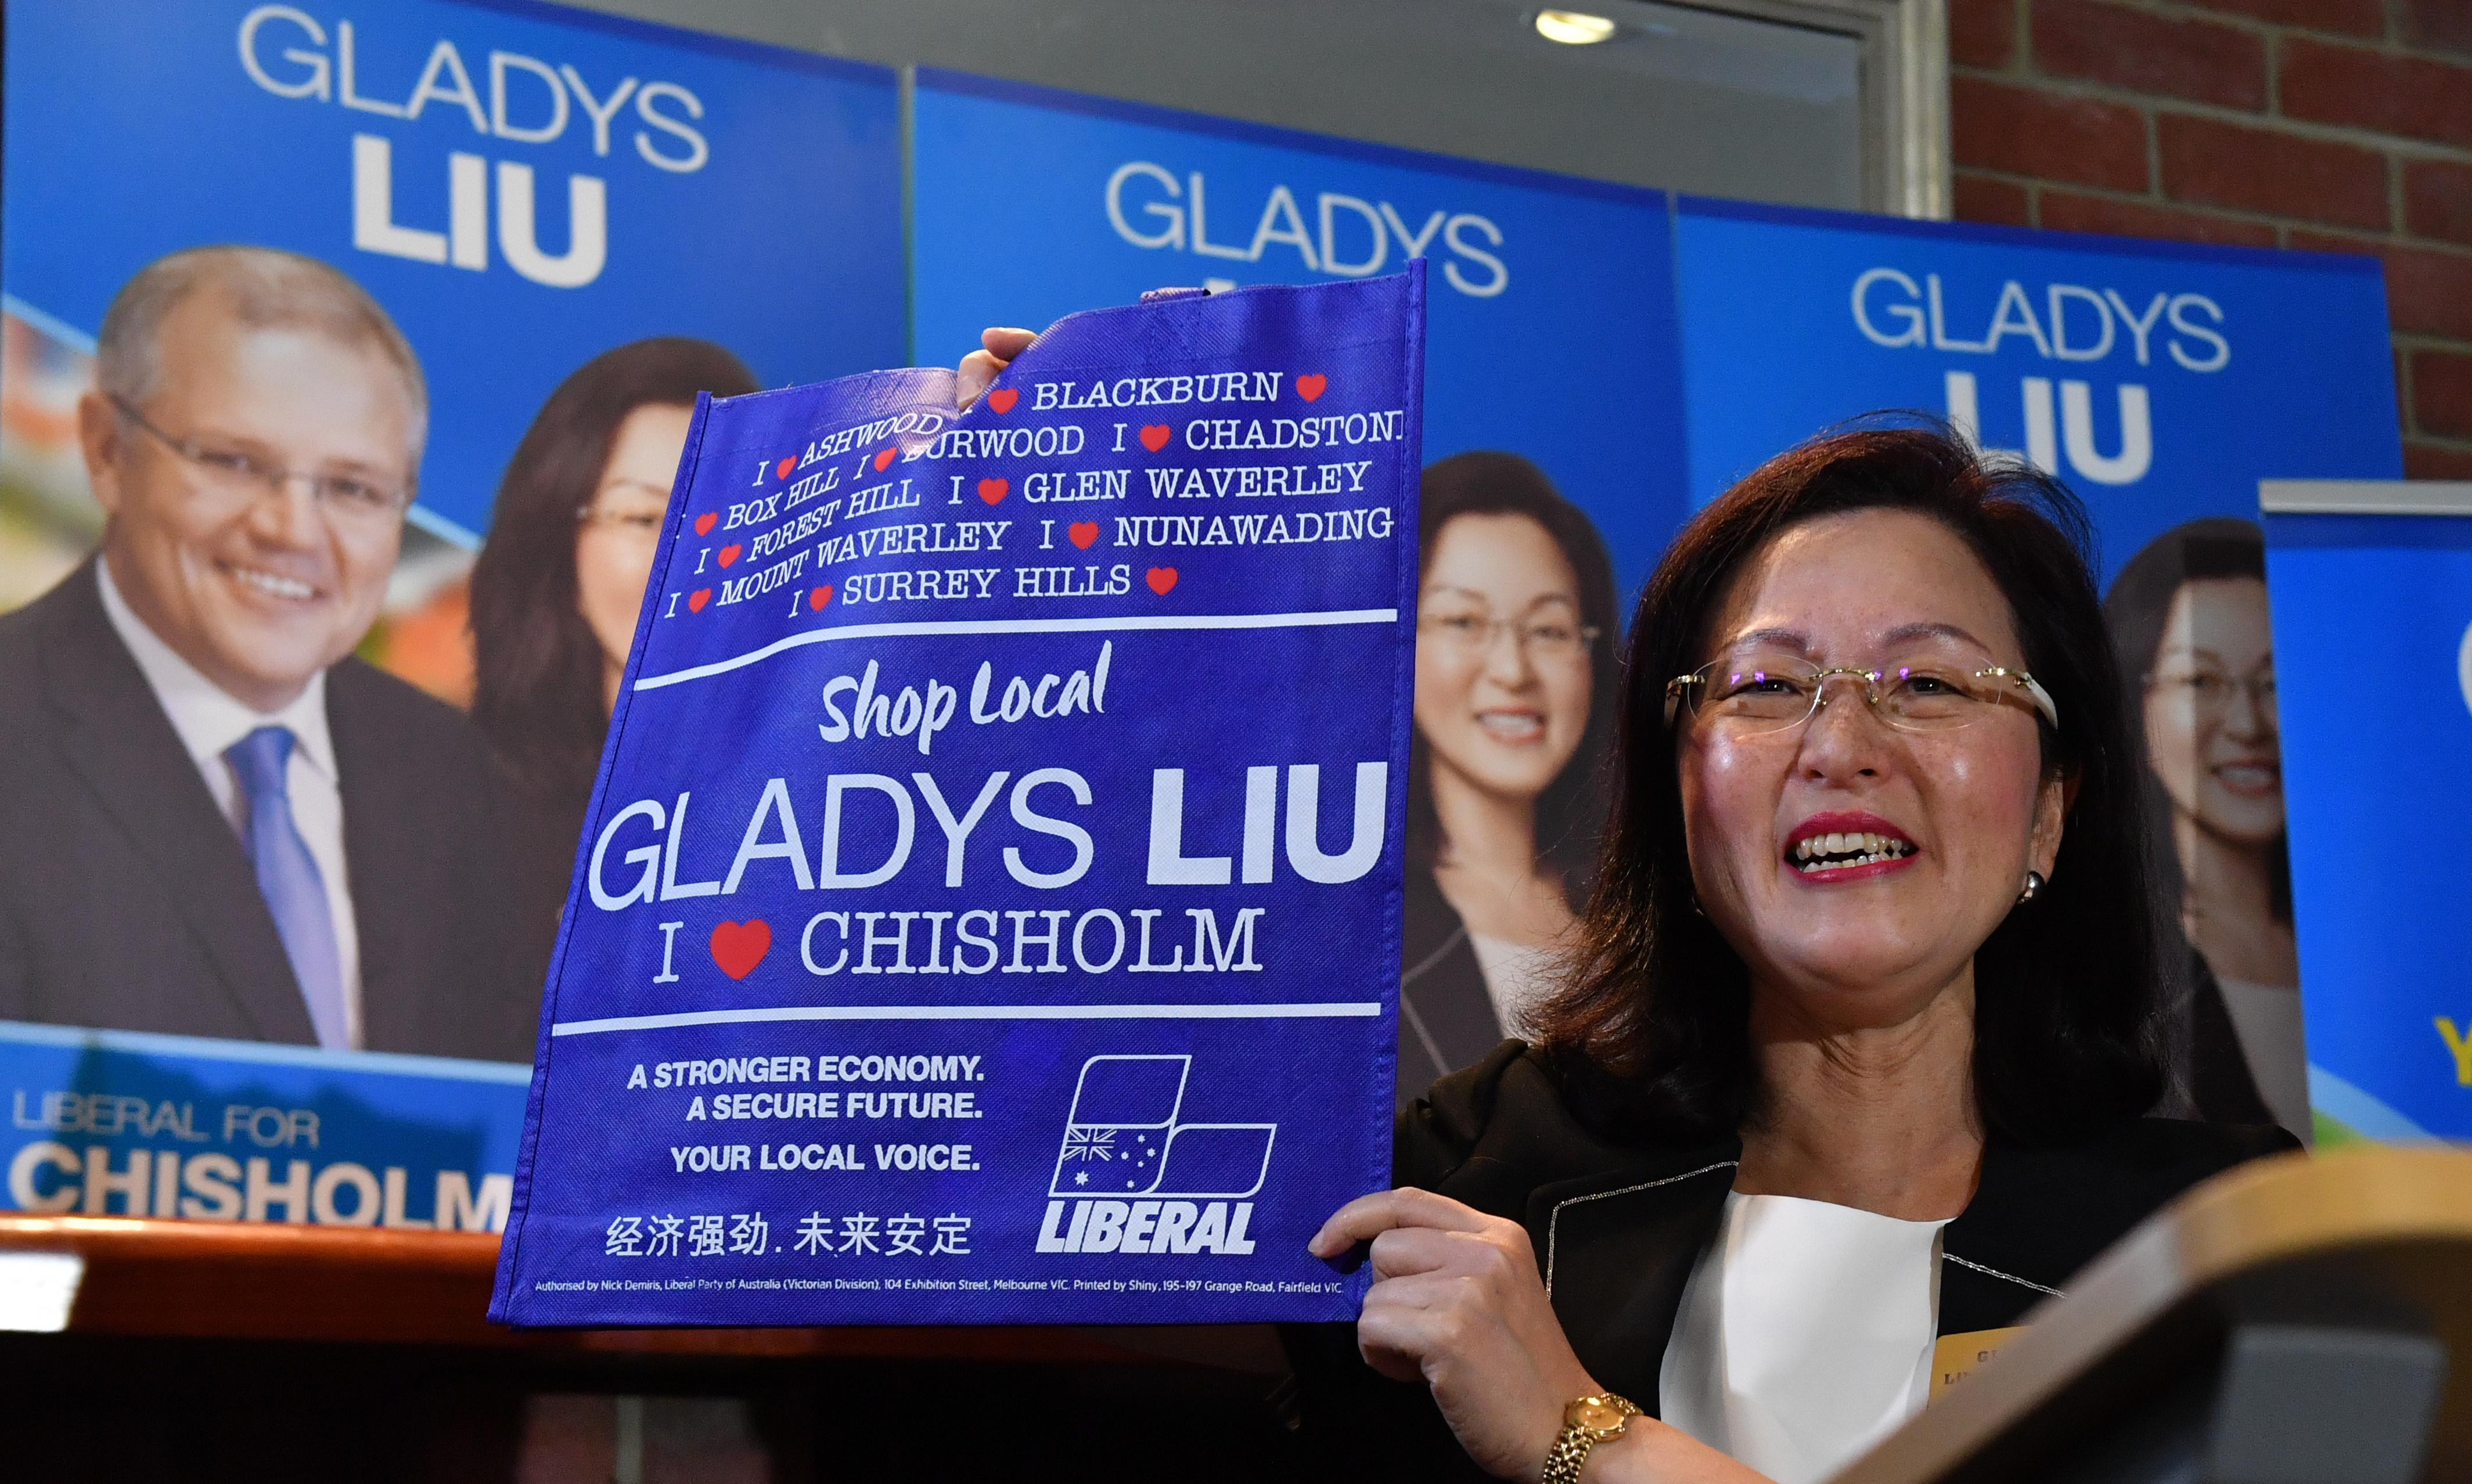 Liberal candidate Gladys Liu shouldn't throw our community under the bus for political gain